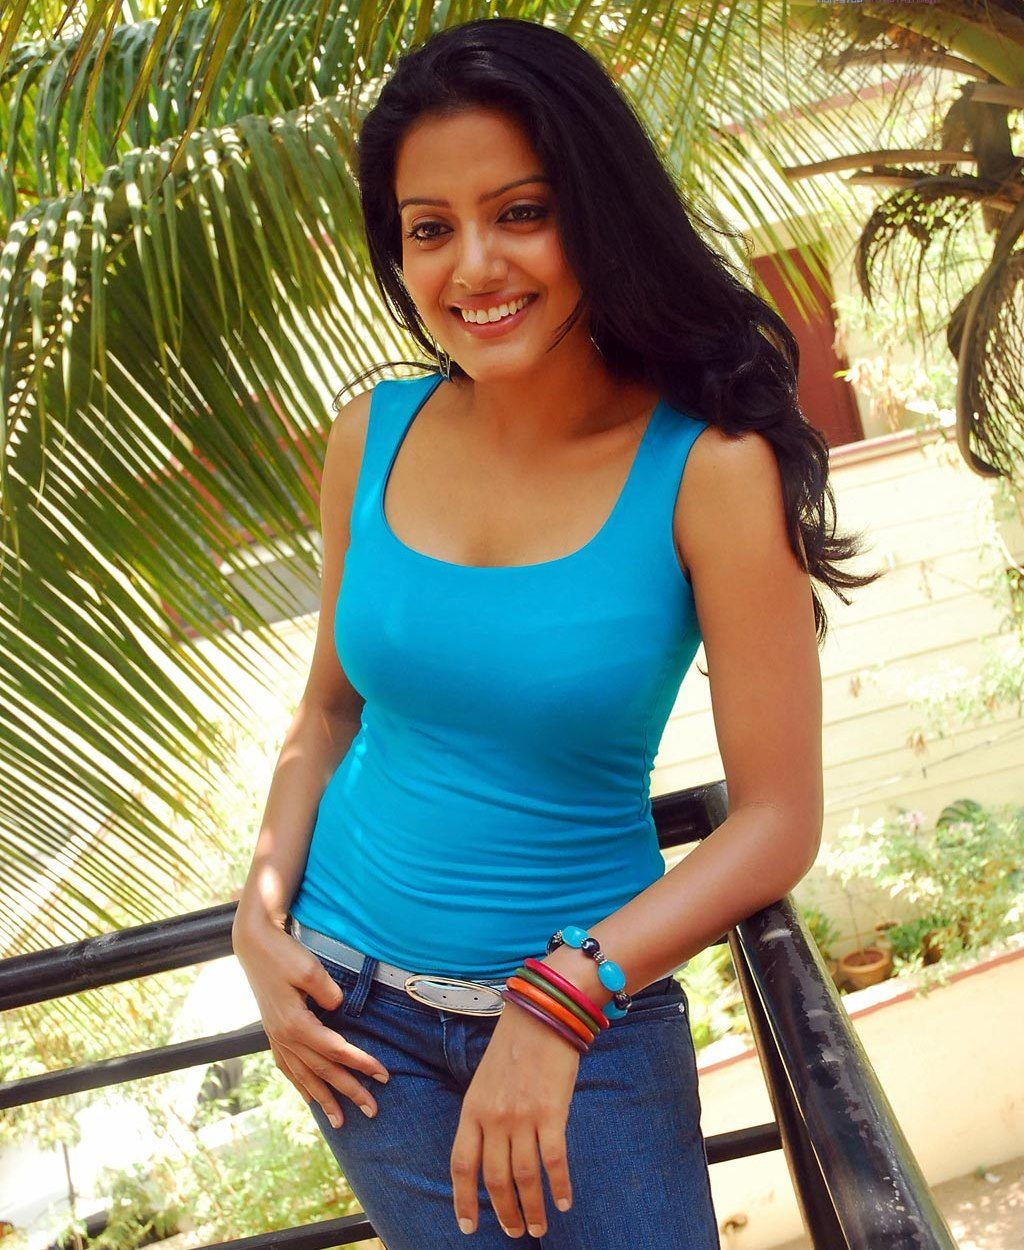 http://1.bp.blogspot.com/_o-CEjRN2Rj8/TU_ZqAjDRpI/AAAAAAAACgY/N-ZuRAnR4xk/s1600/tollywood-actress-visakha-singh-hot-stills-and-photos__12.jpg